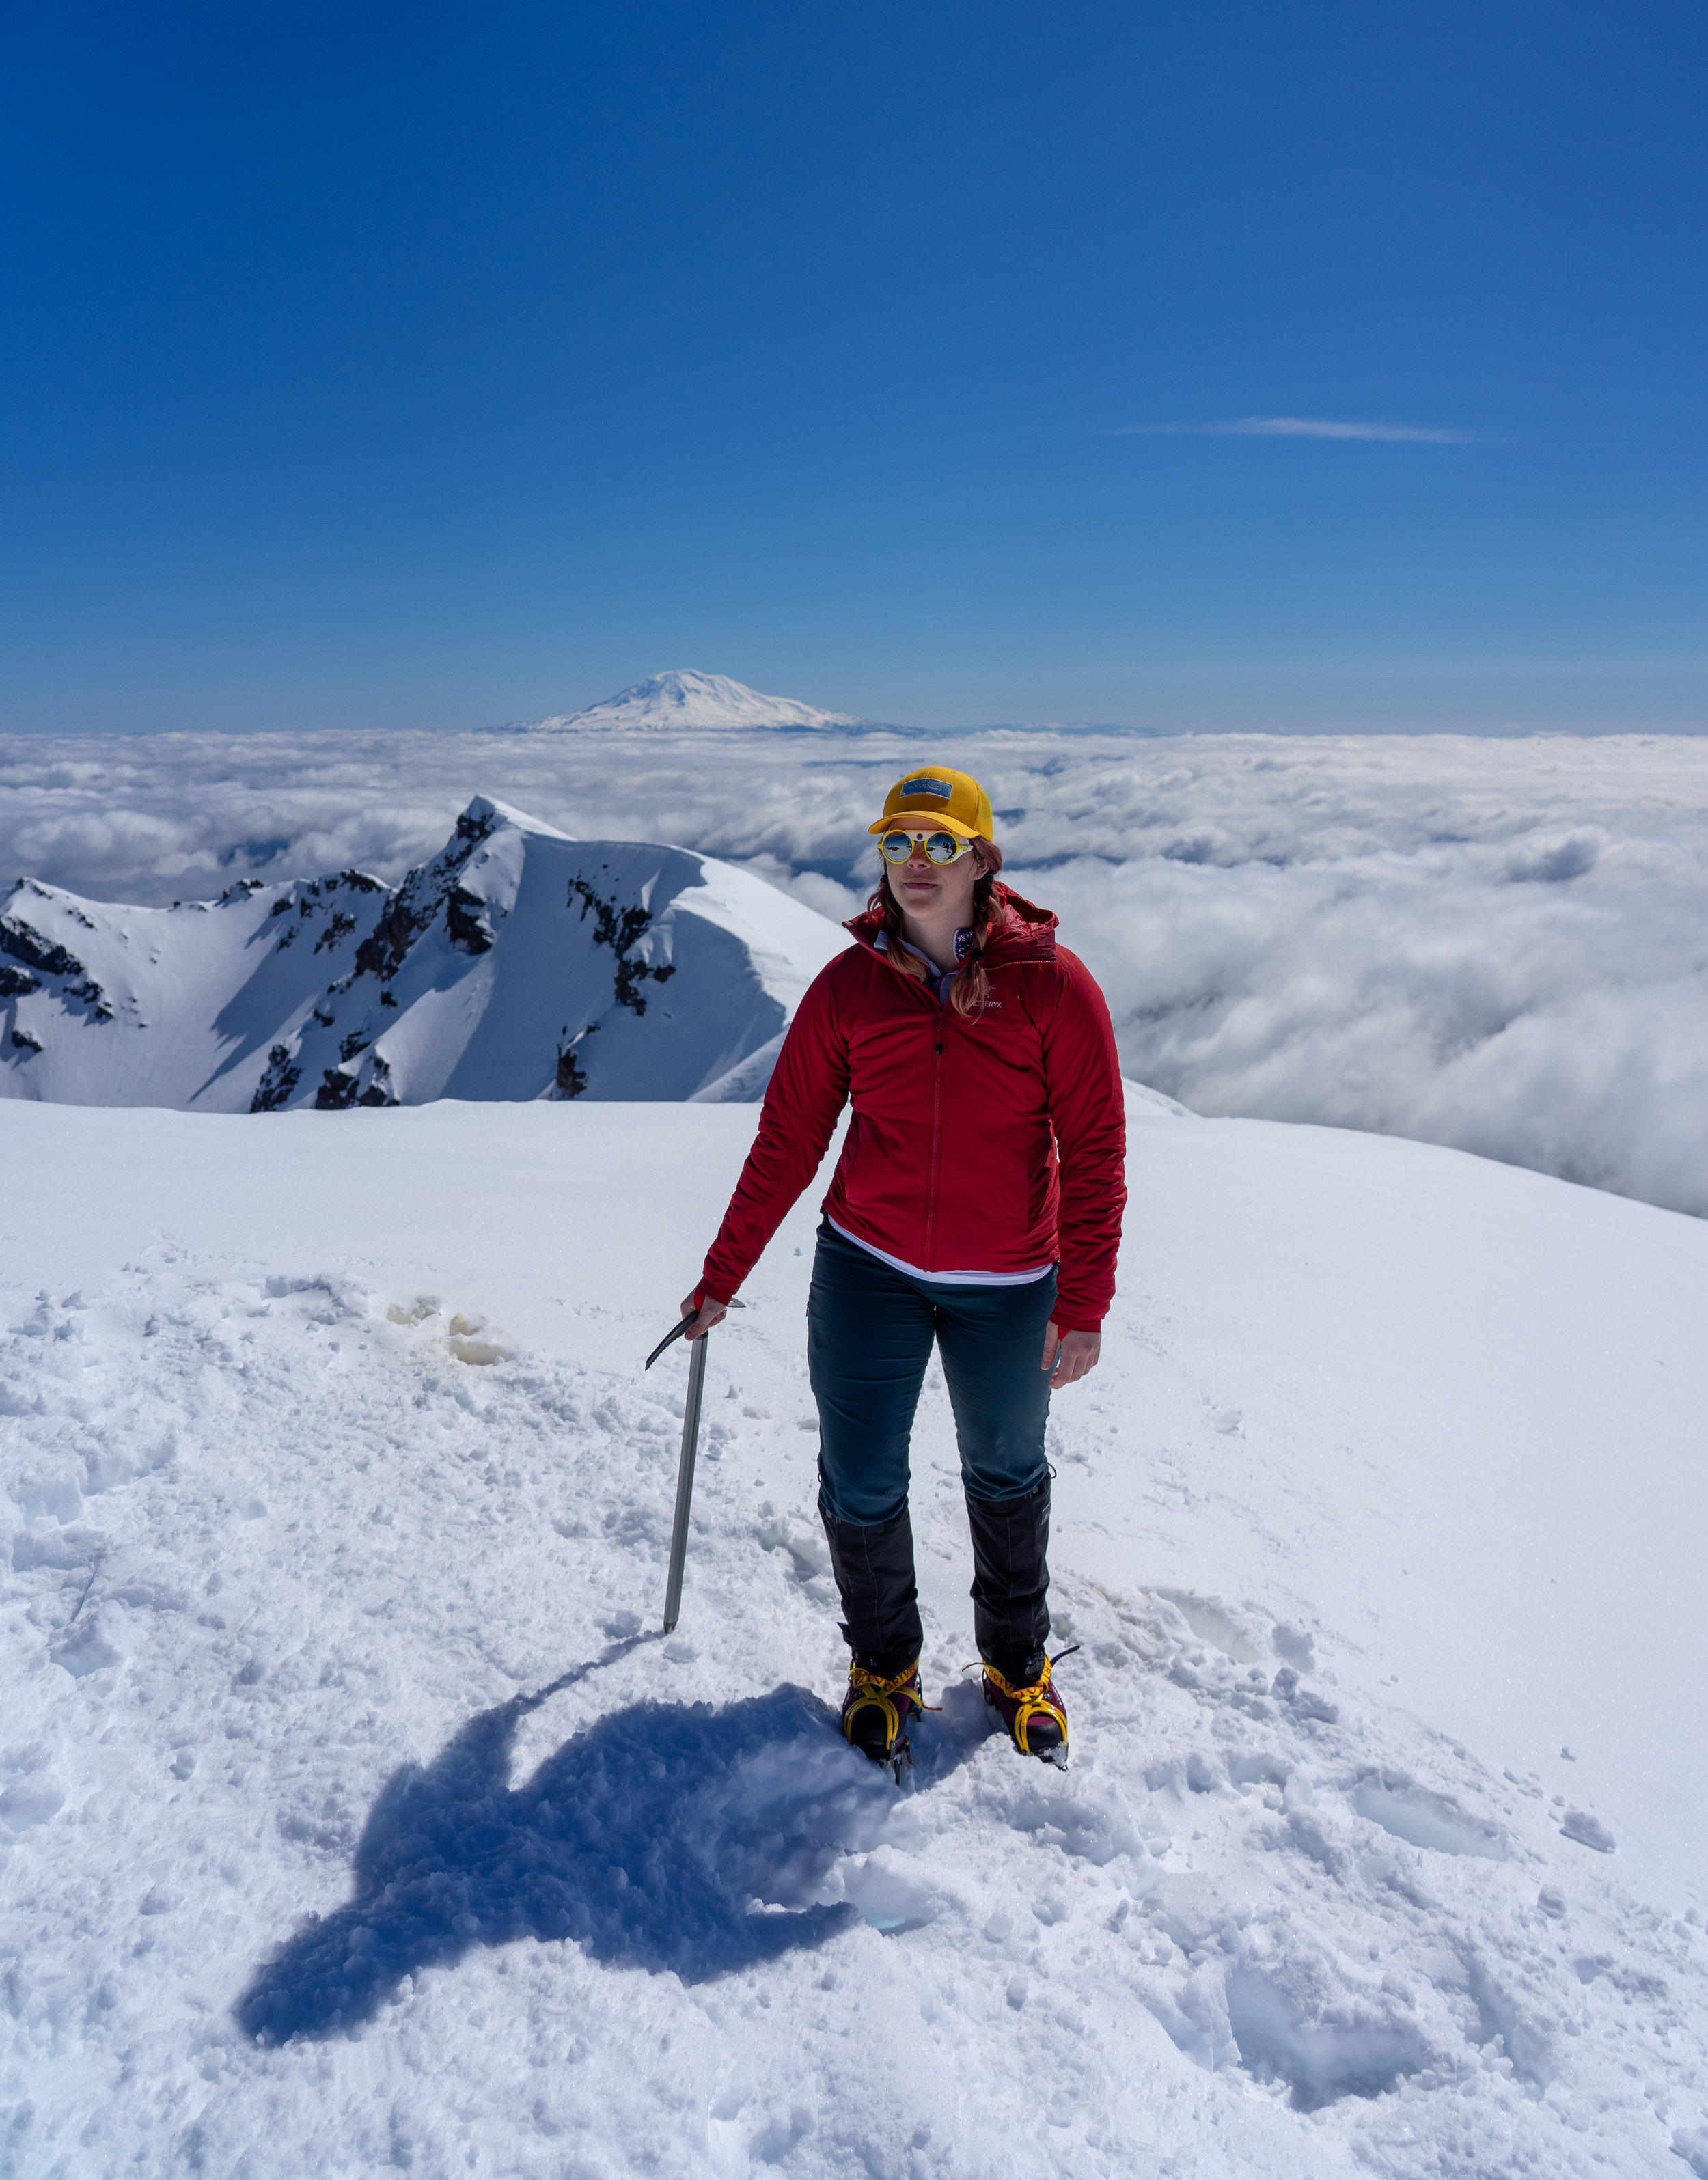 This time I had the skills, gear, and confidence to get to the summit without panicking.